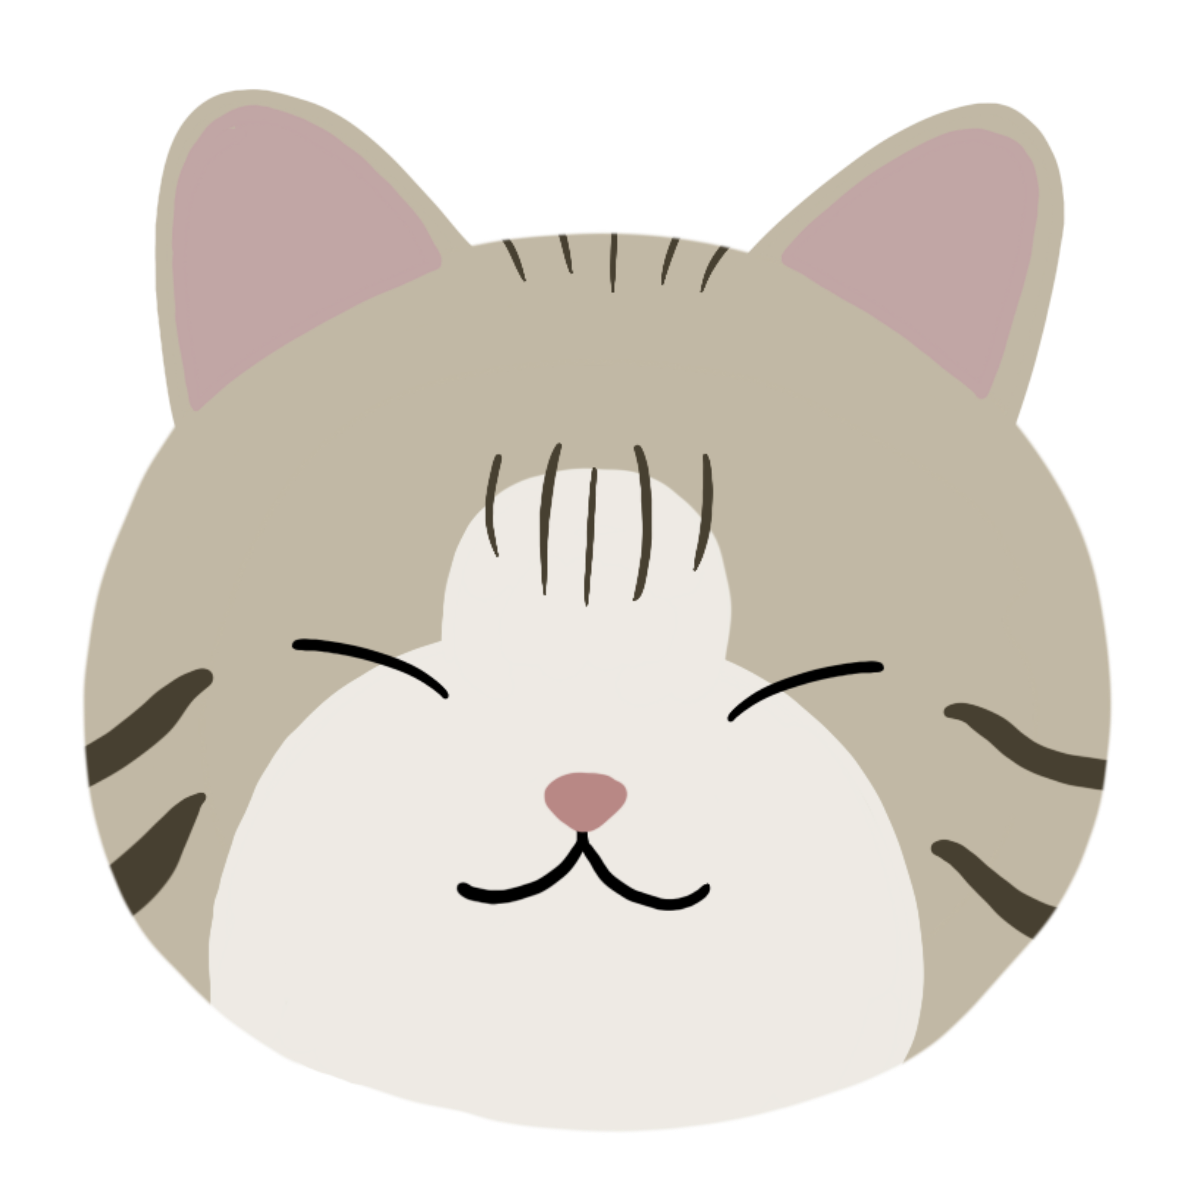 cat icon drawing